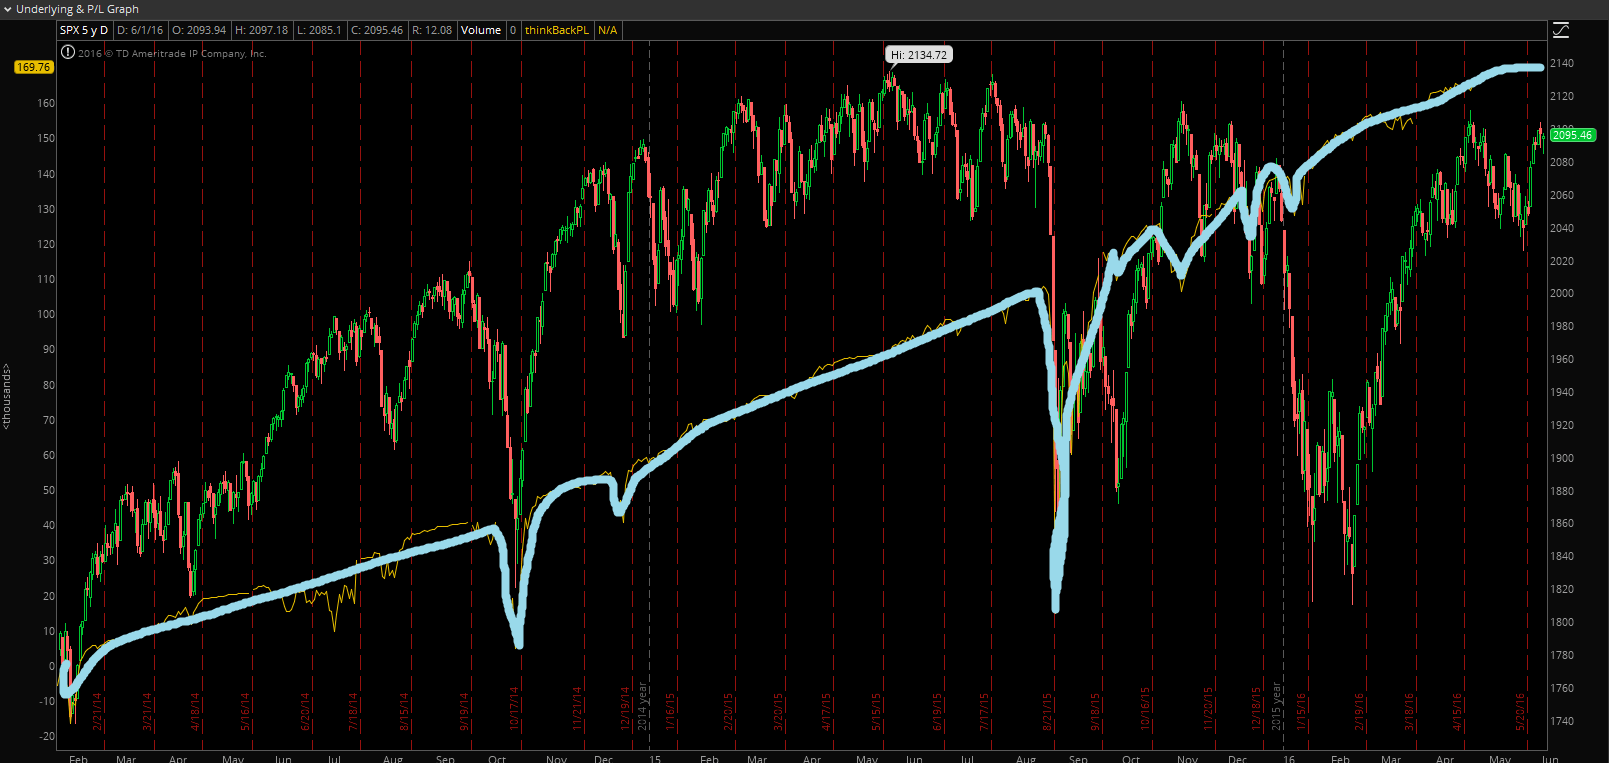 SPX_strangles_sell_backtest-with-enlarged-equity-curve.png